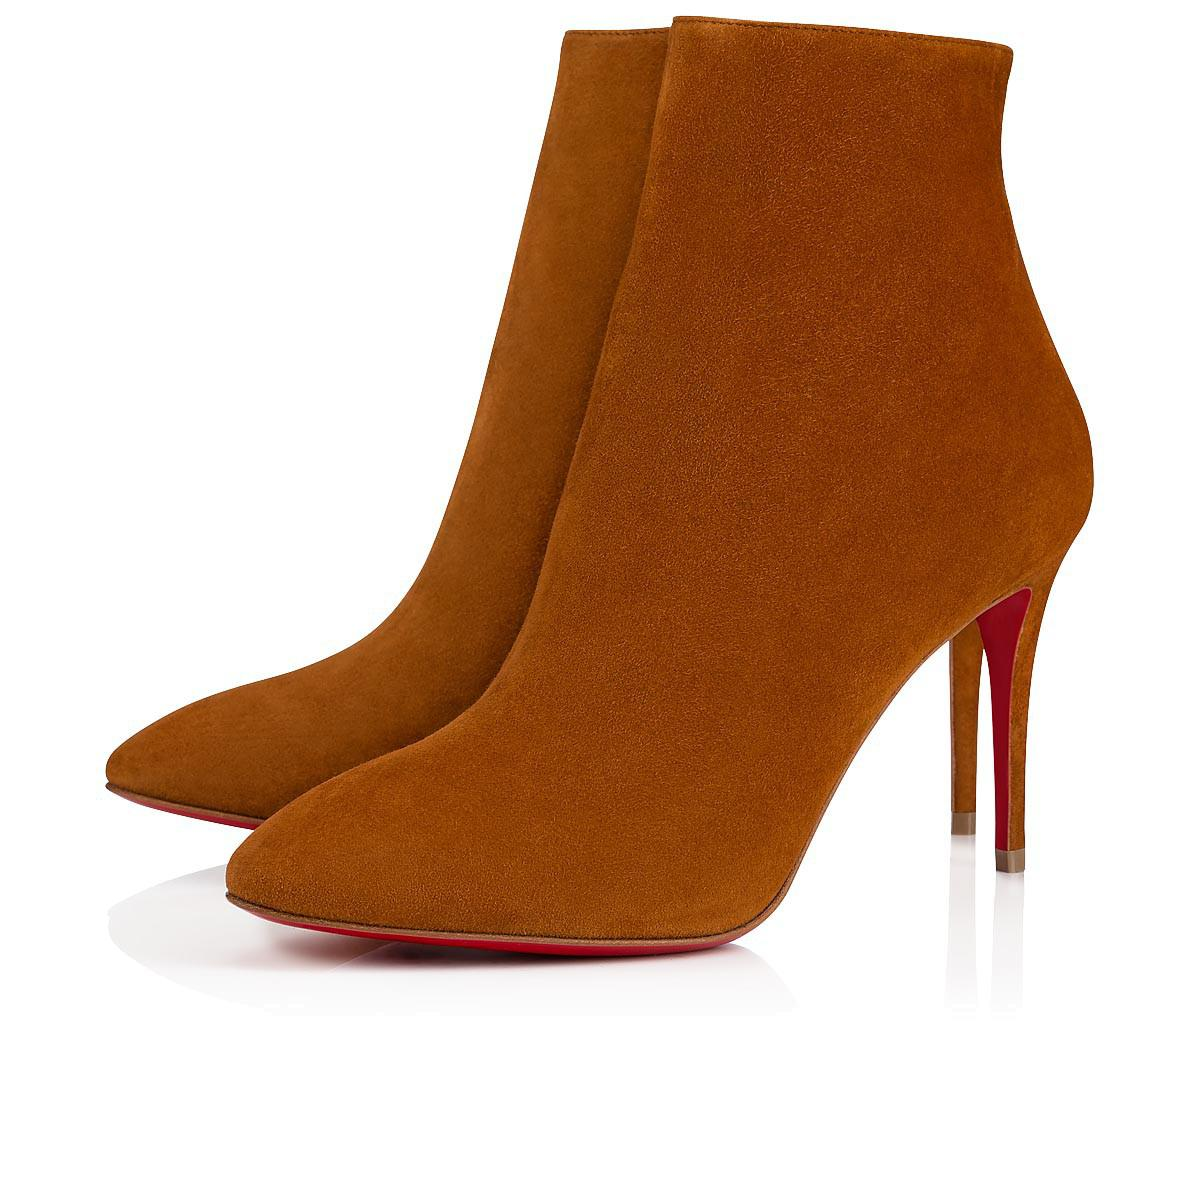 8d20b4a45ab Lyst - Christian Louboutin Eloise Booty in Brown